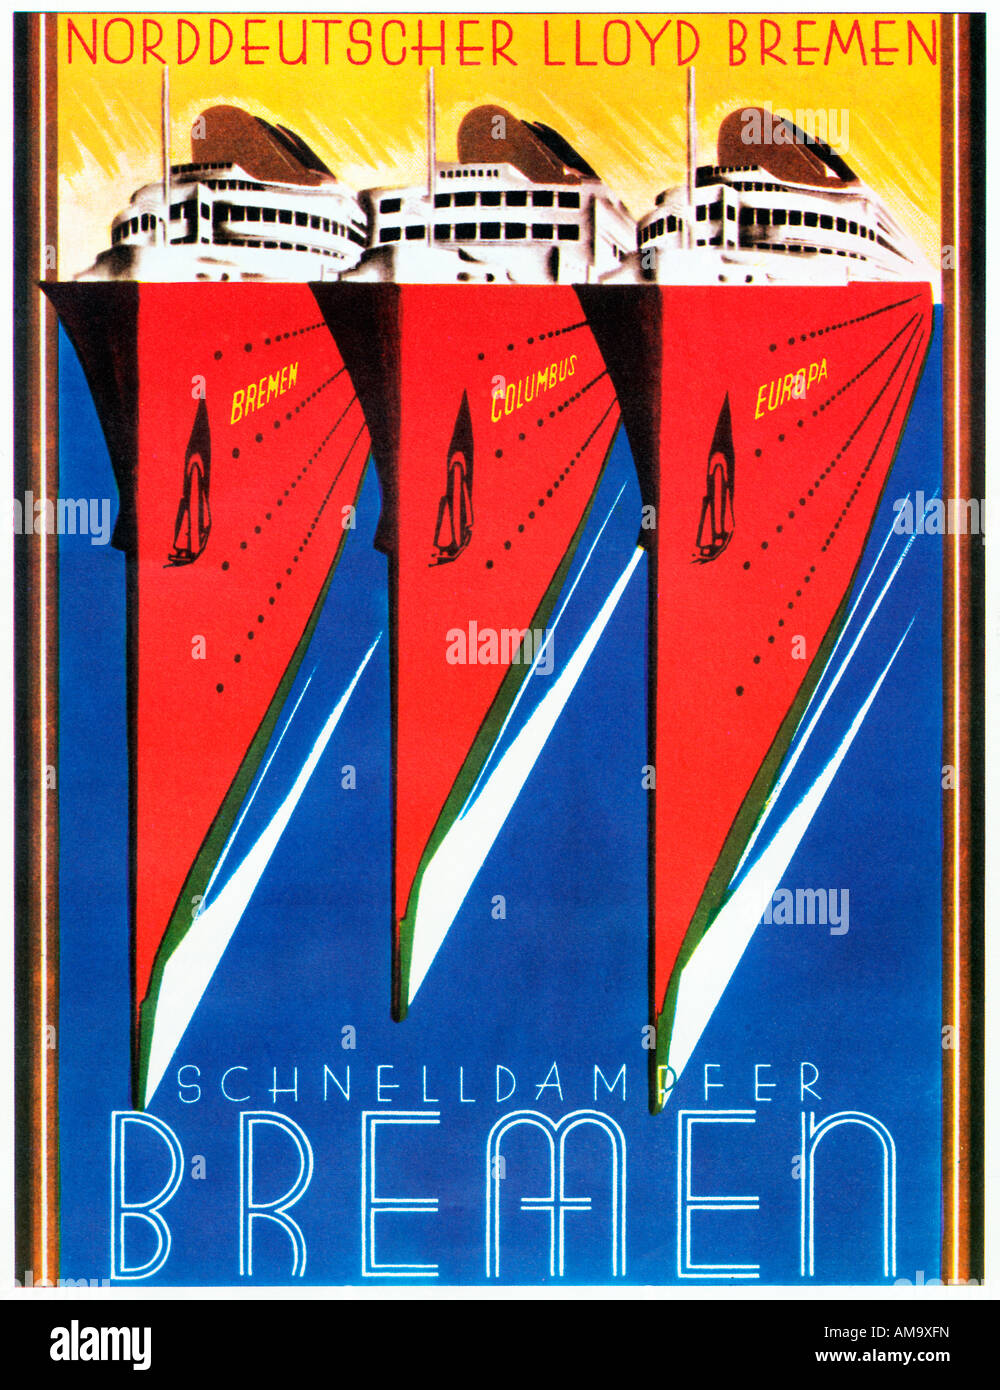 Schnelldampfer Bremen 1930s Art Deco Poster For The Fast ...